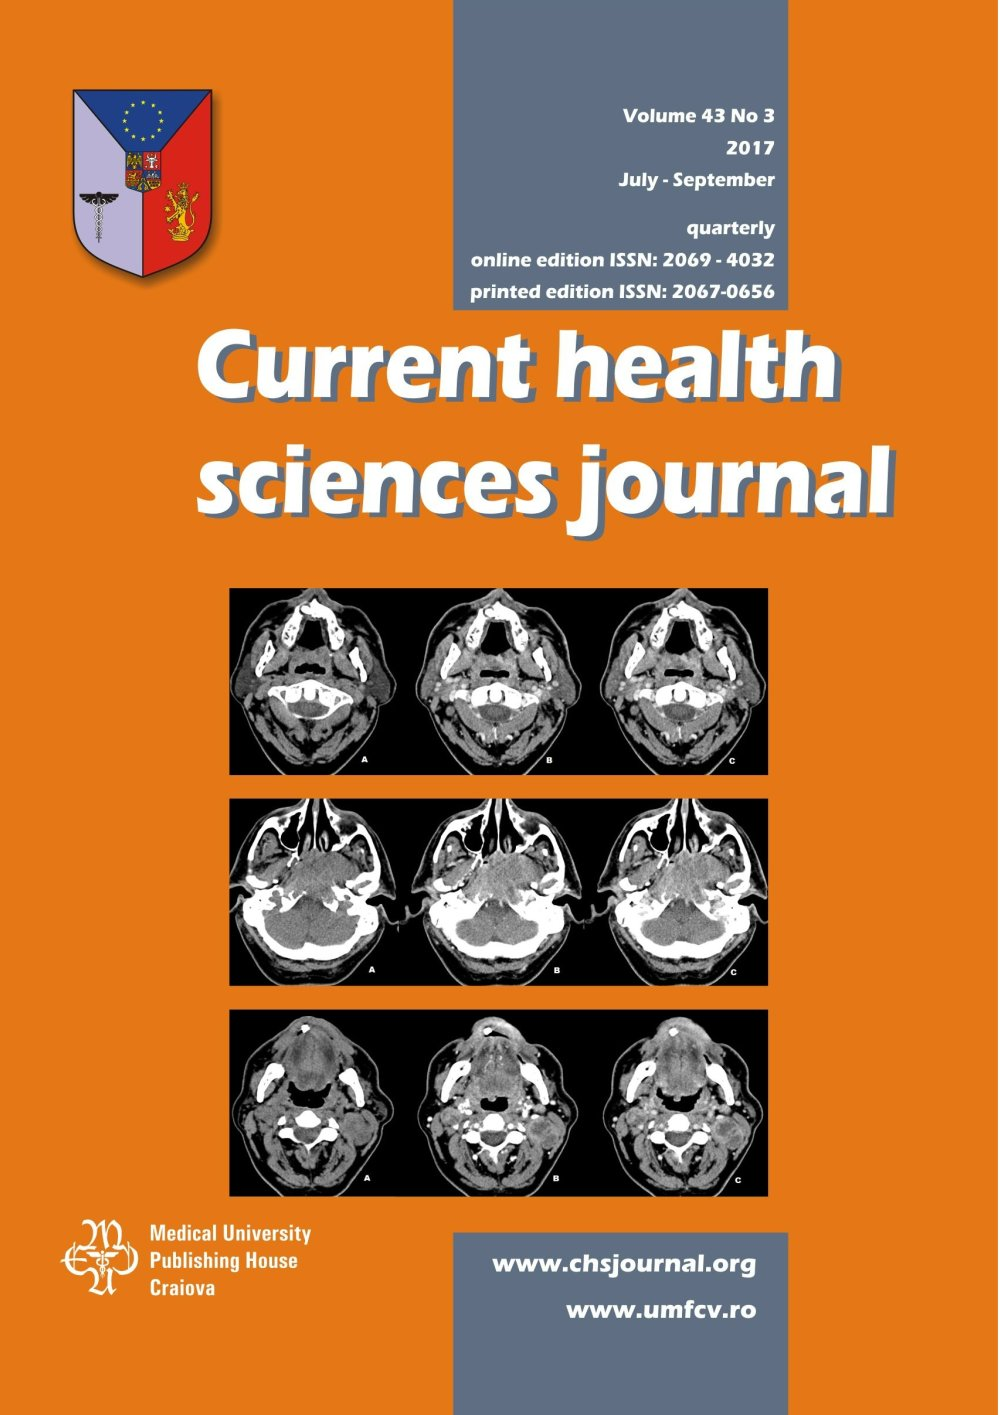 Current Health Sciences Journal, vol. 43 no. 3, 2017